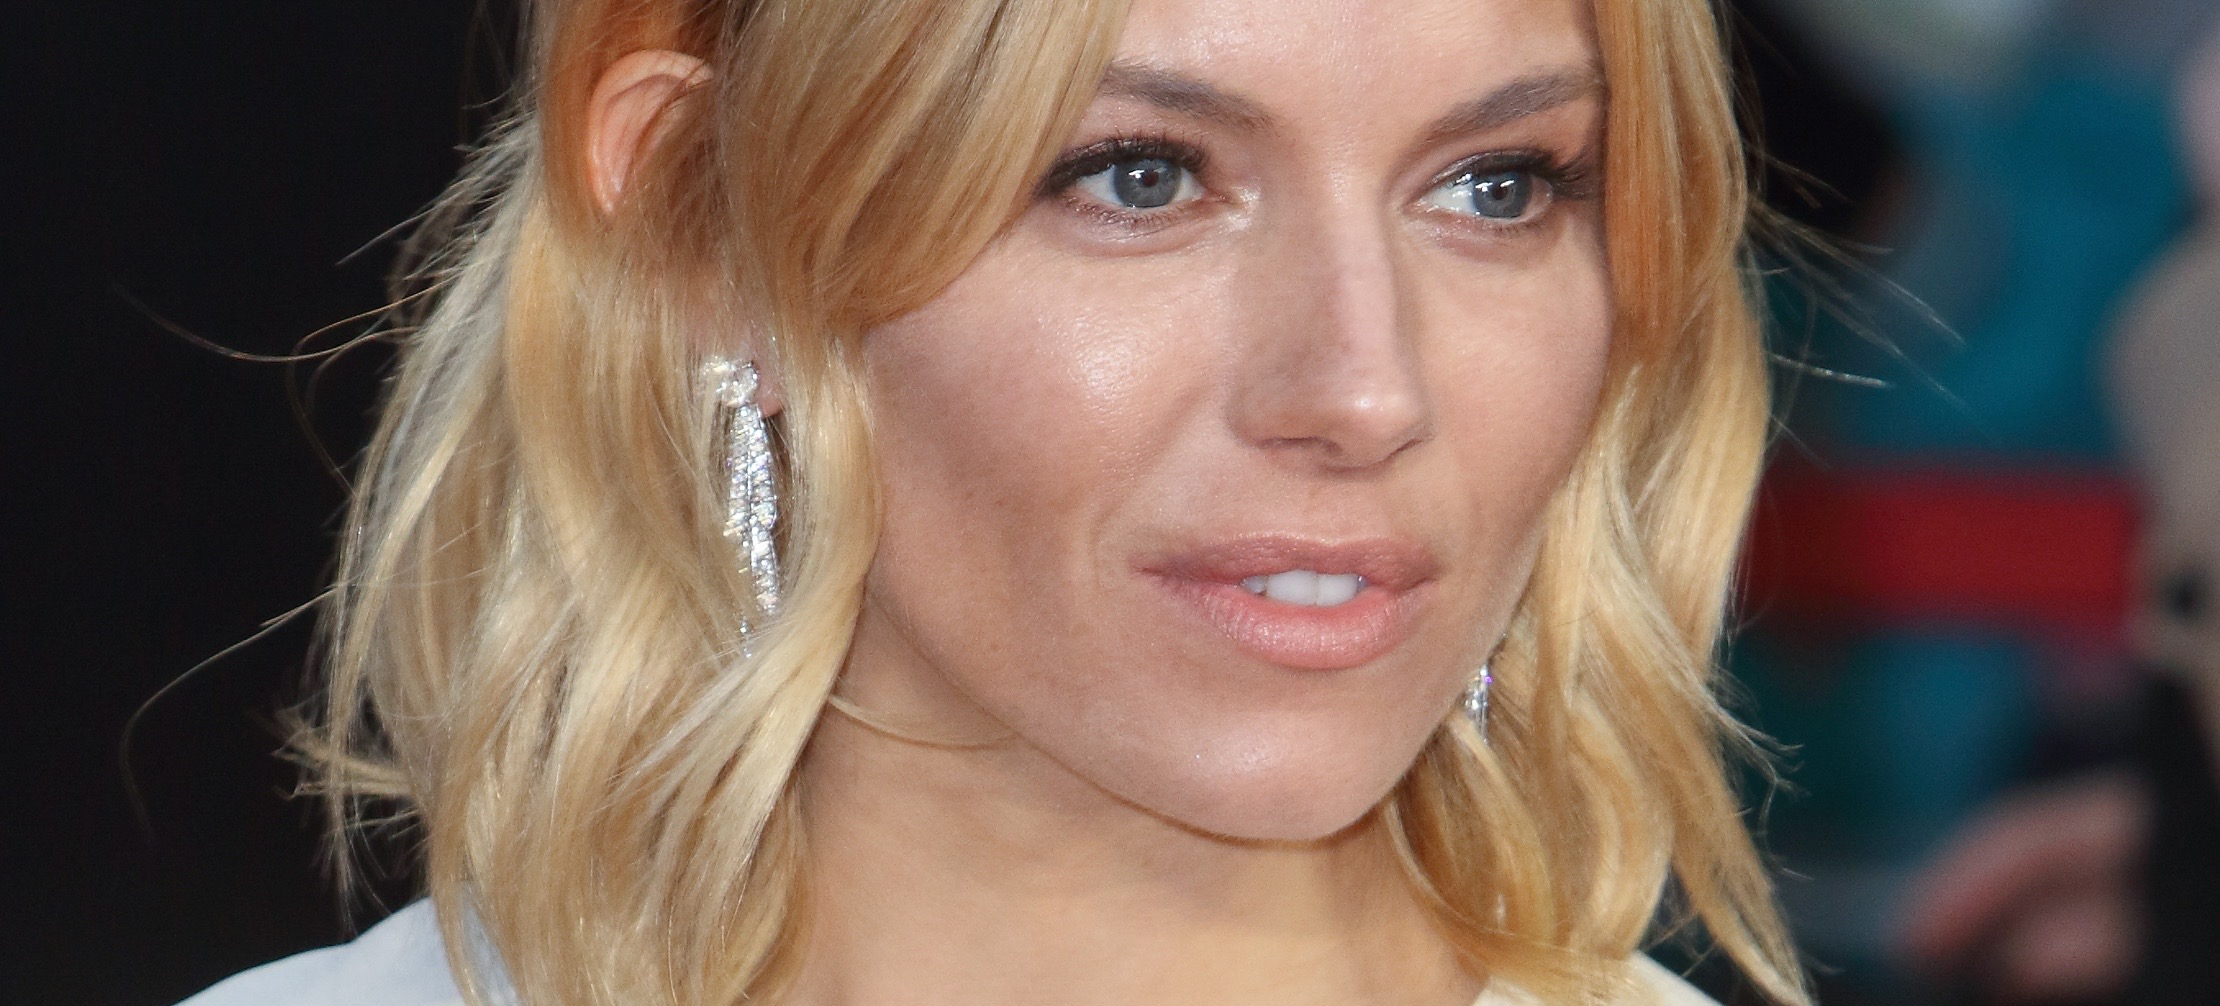 The Brit-Beauty Product Sienna Miller Swears By